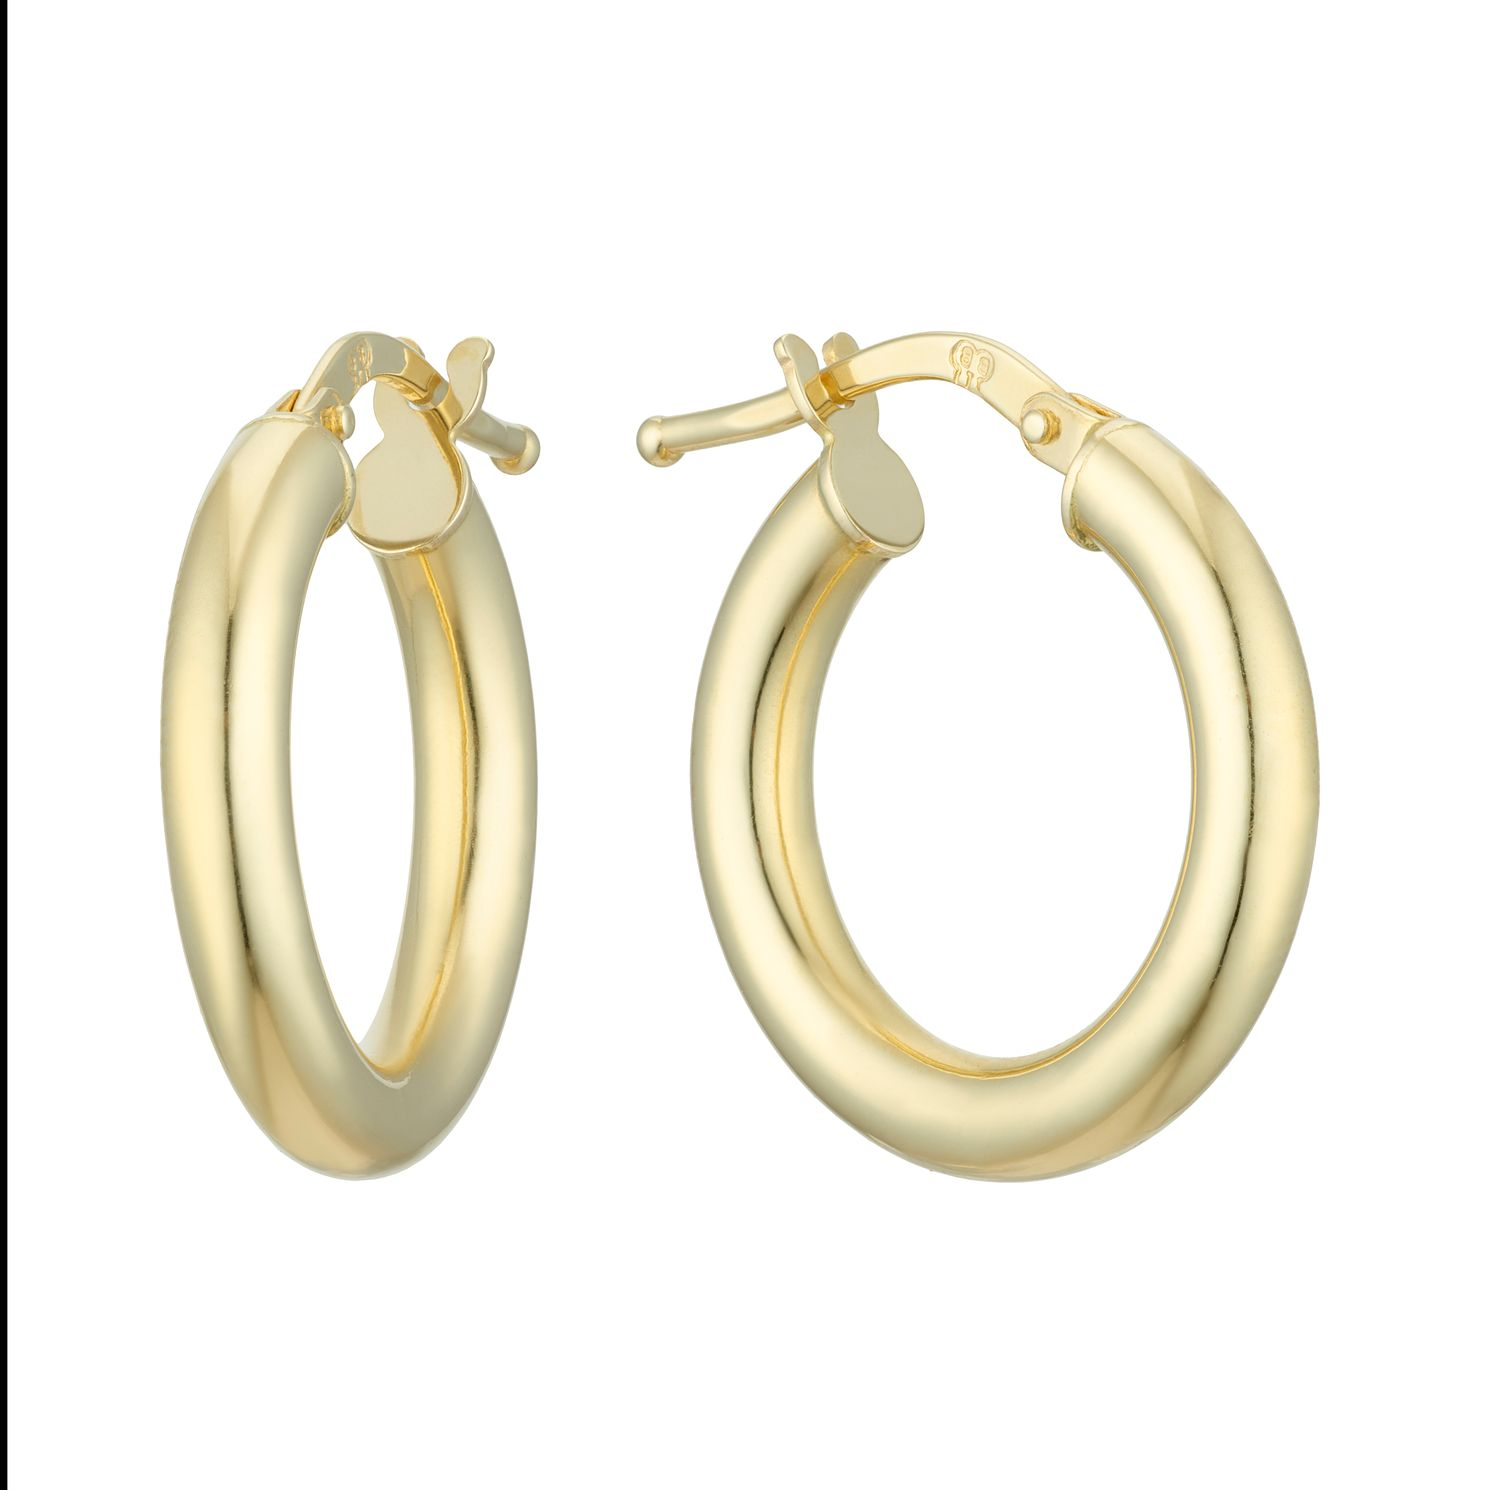 18ct Yellow Gold 18mm Round Tube Hoop Earrings - Product number 4681592